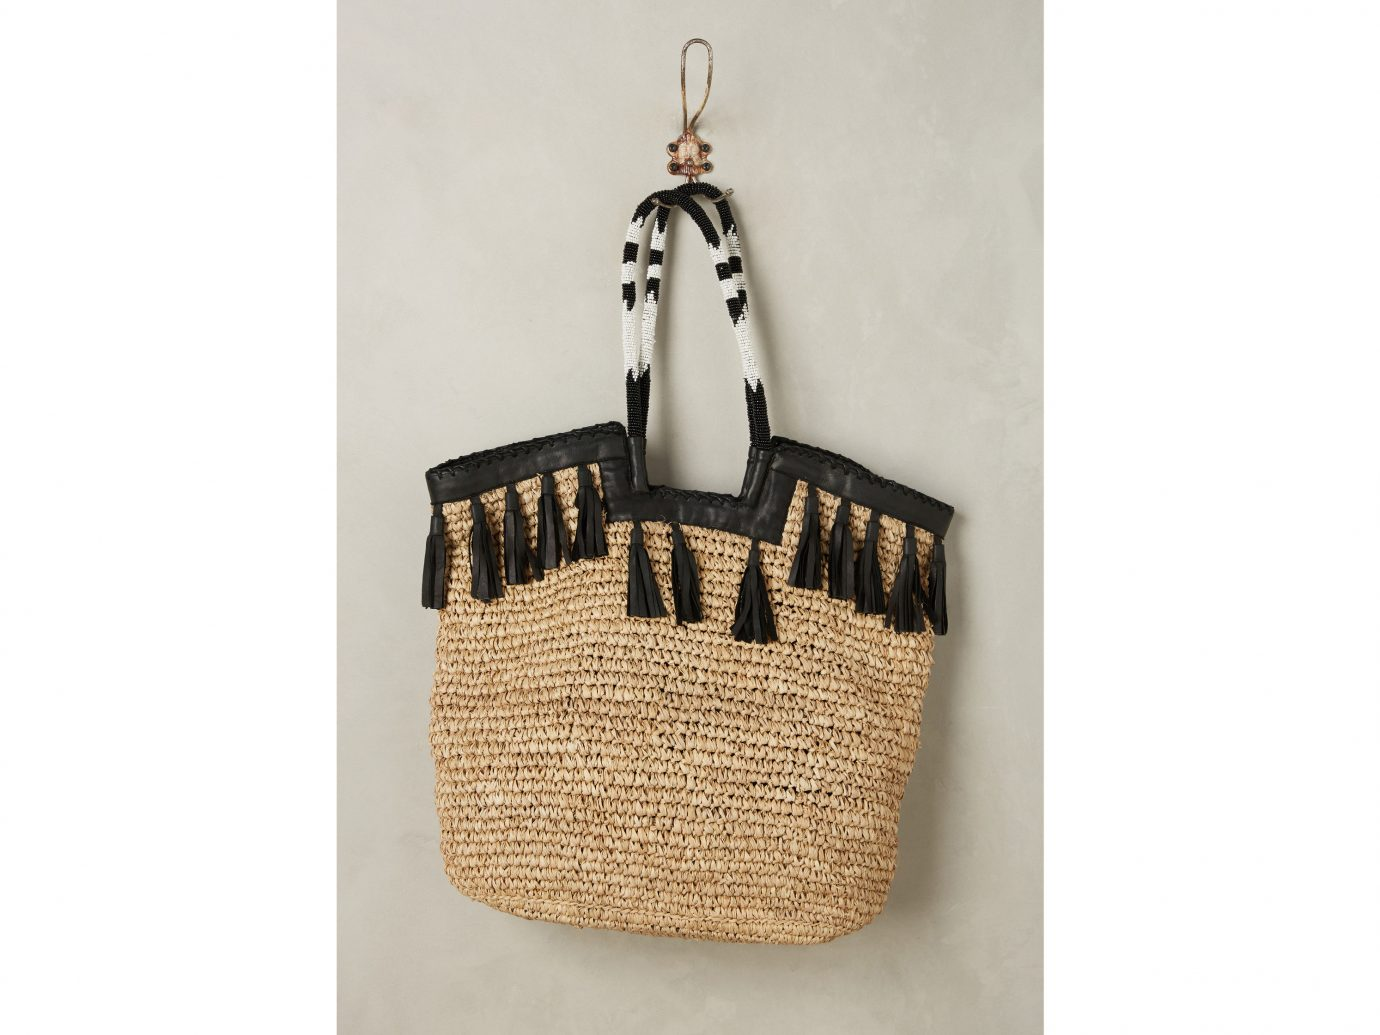 Style + Design handbag indoor bag fashion accessory tote bag beige rectangle different accessory